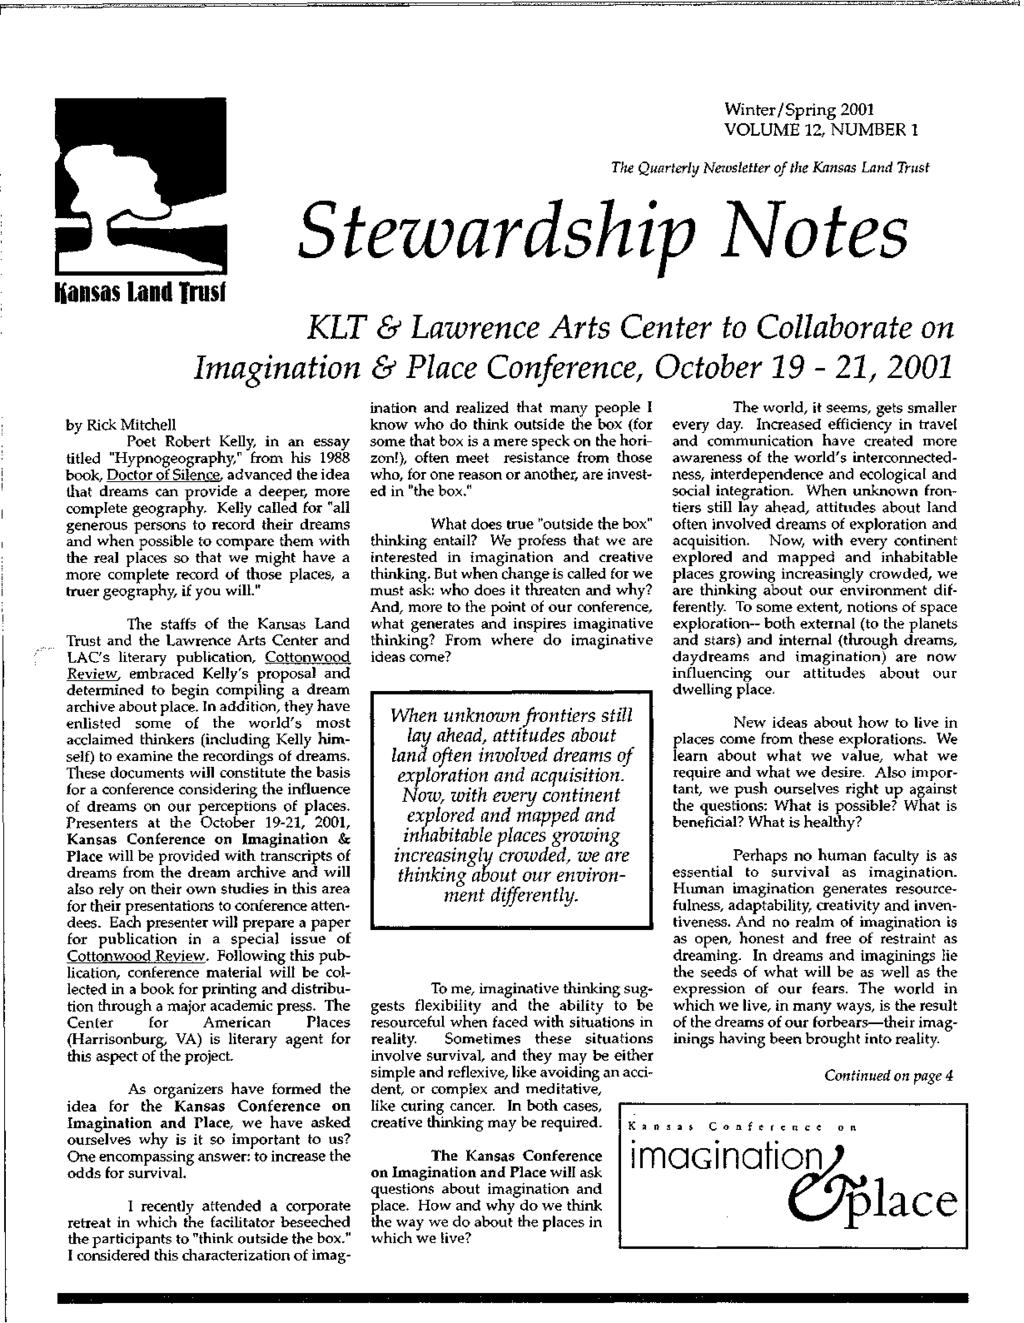 tewardship Winter / Spring 2001 VOLUME 12, NUMBER 1 The Quarterly Newsletter of the Kansas Land Trust Kansas land Trusf KLT & Lawrence Arts Center to Collaborate on Imagination & Place Conference,